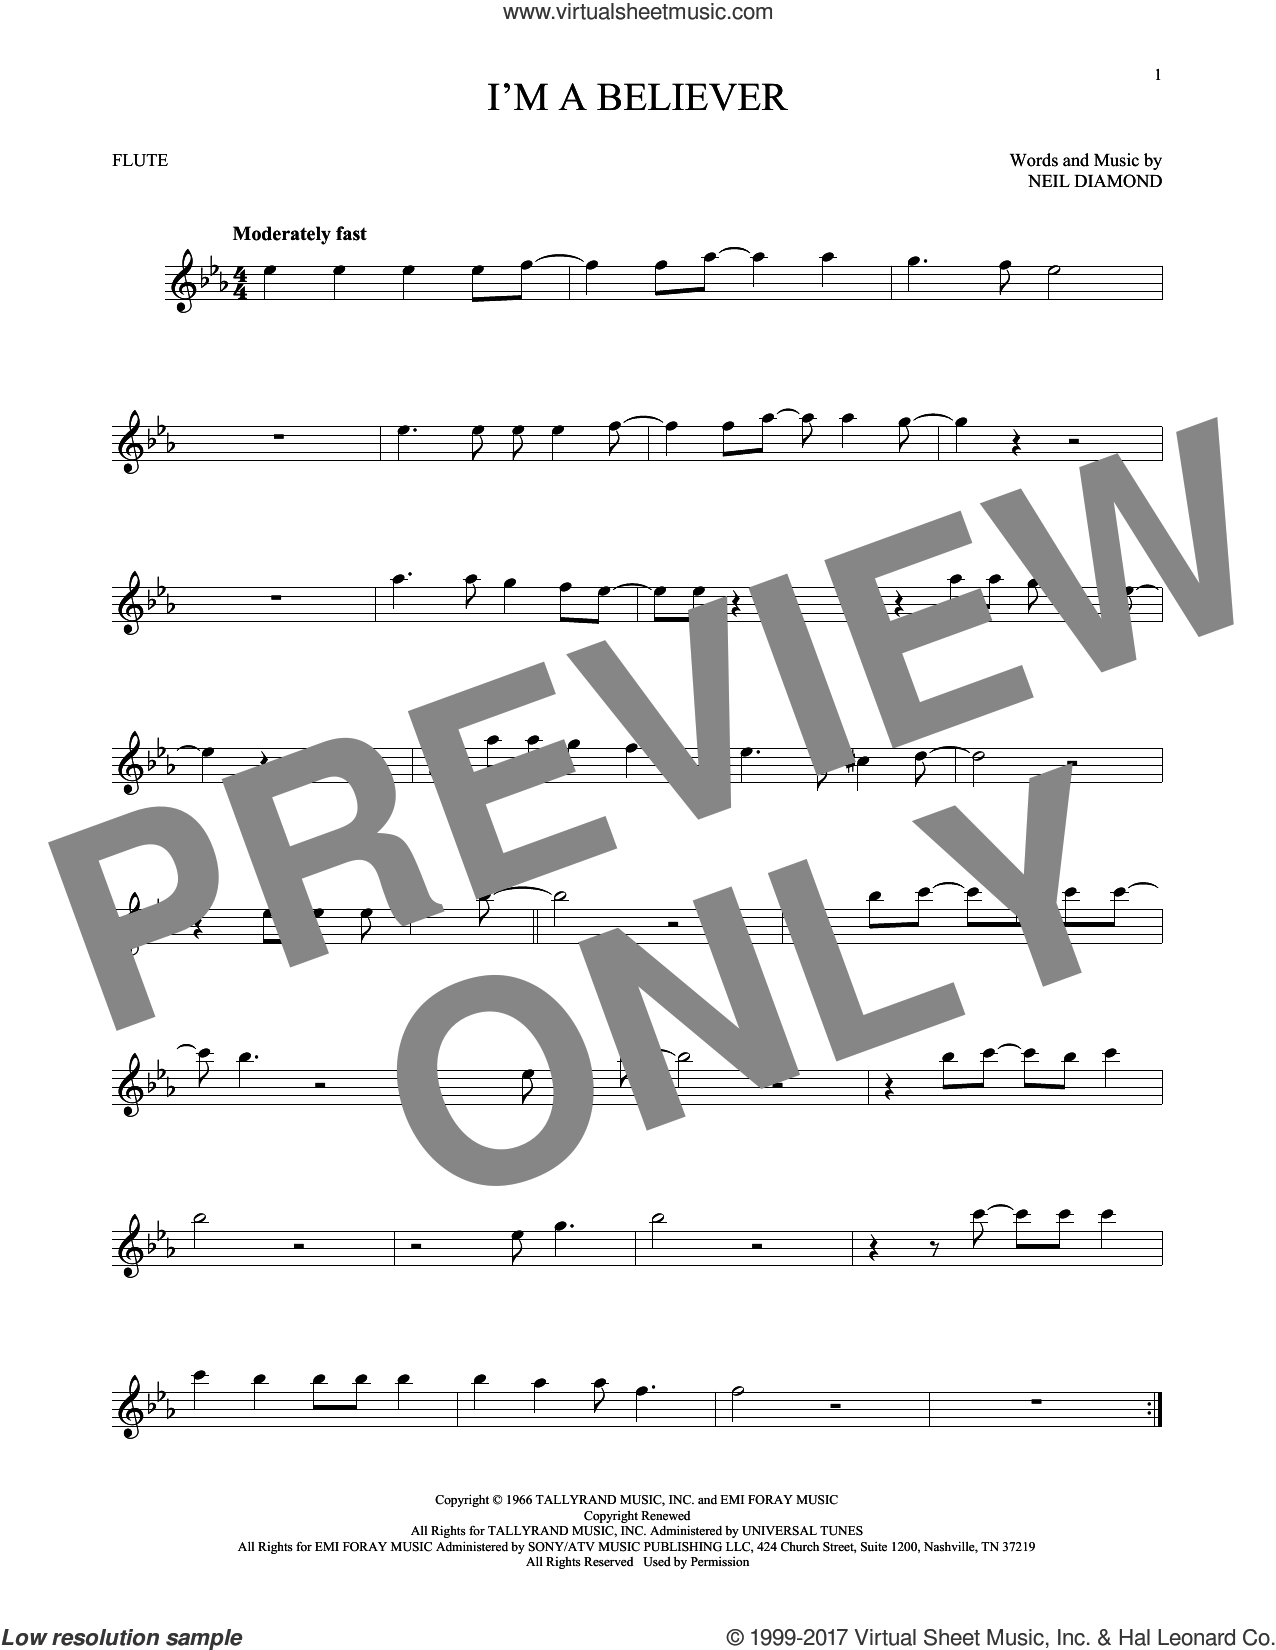 I'm A Believer sheet music for flute solo by Neil Diamond, Smash Mouth and The Monkees, intermediate skill level